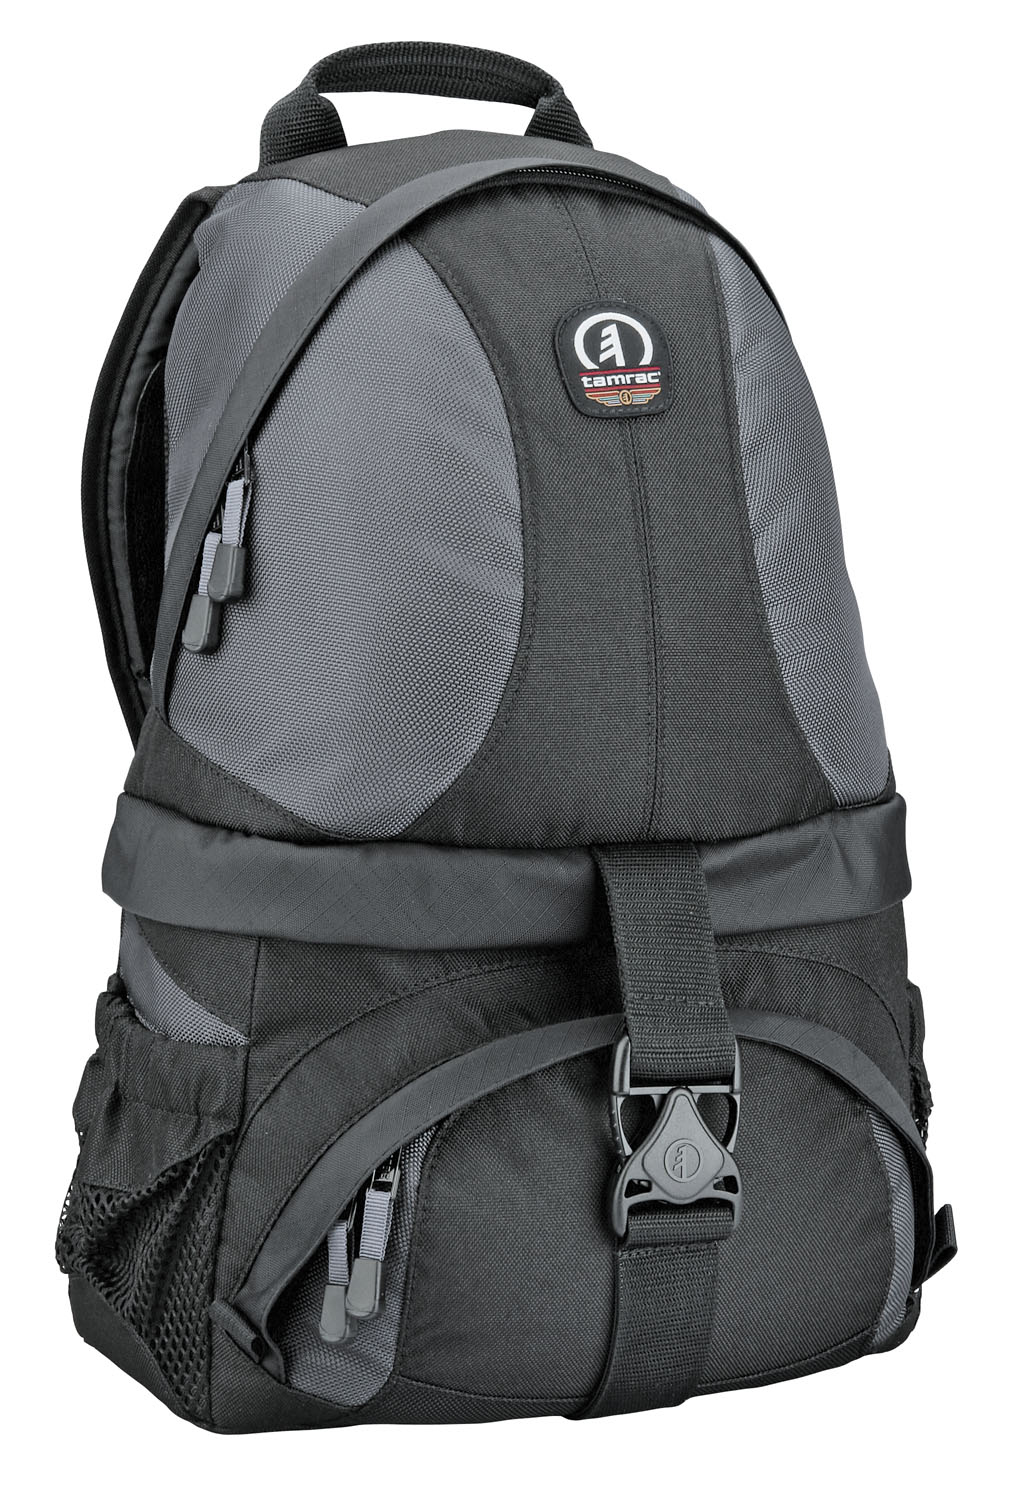 5547 ADVENTURE 7 Backpack